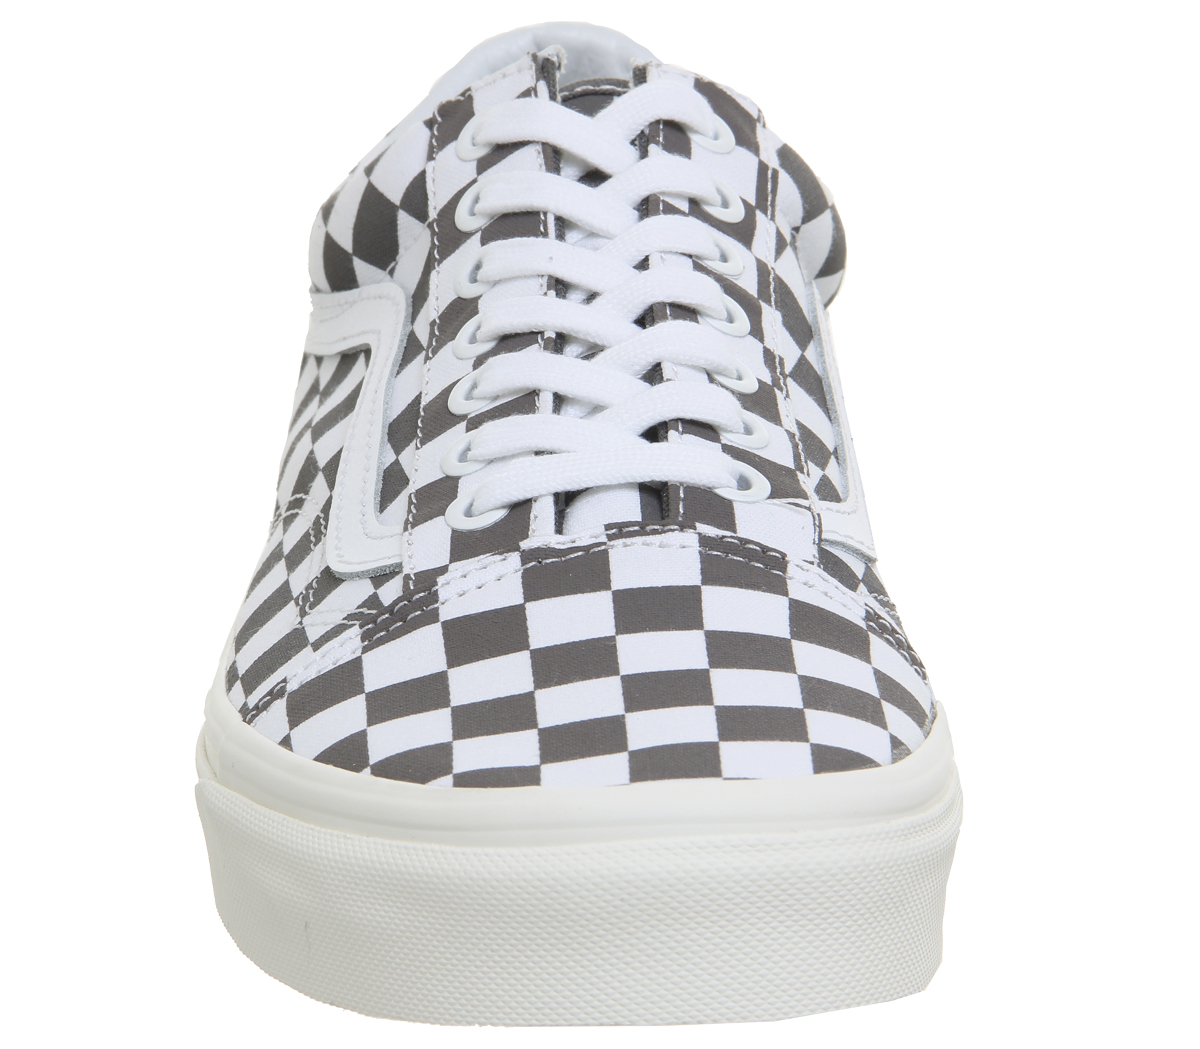 d10600ddea Sentinel Mens Vans Old Skool Trainers Pewter Marshmellow Checkerboard  Trainers Shoes